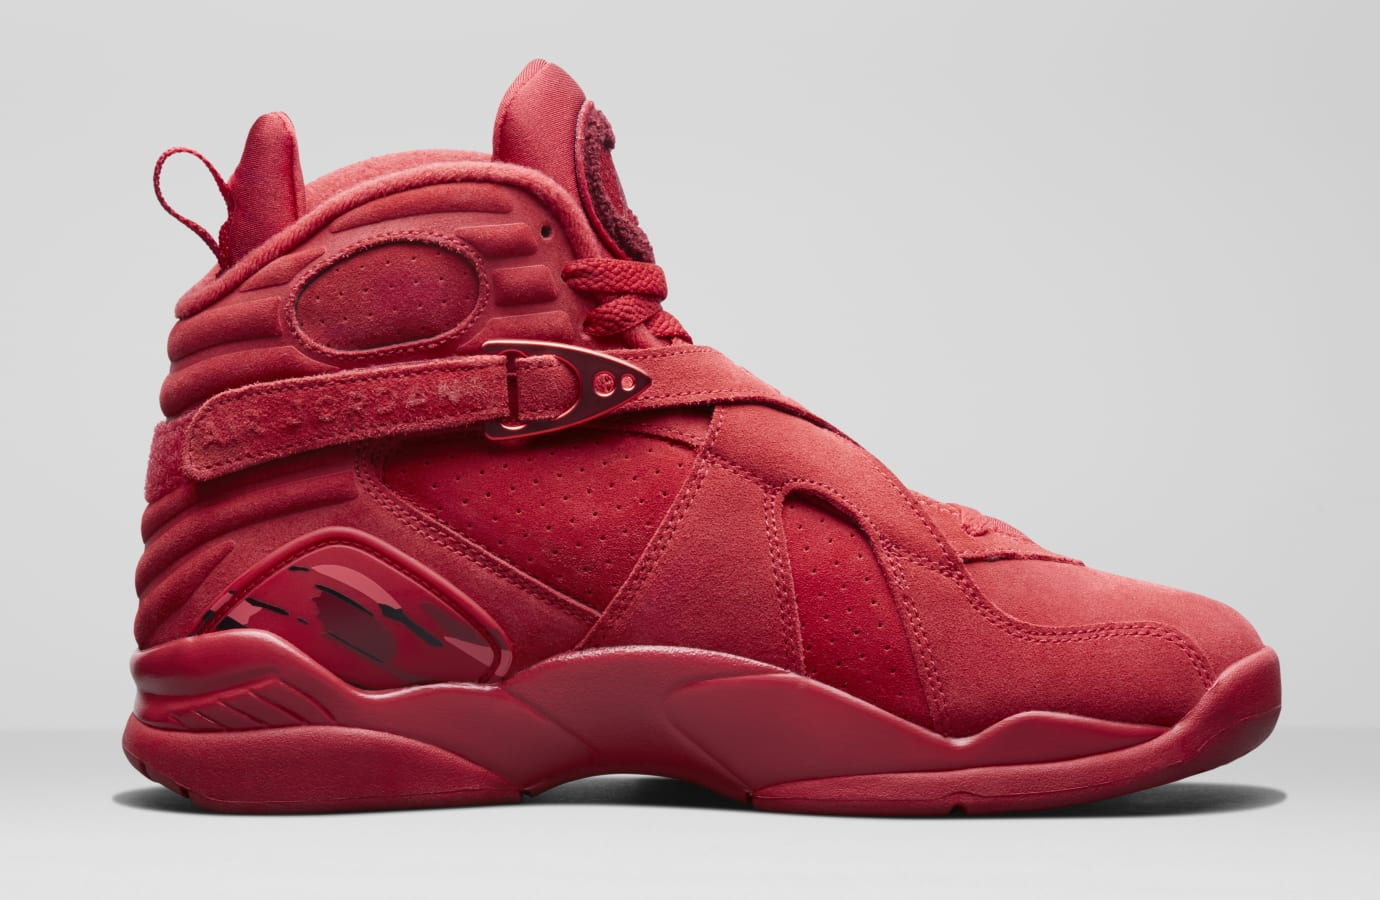 fef96bb430d WMNS Air Jordan 8 'Valentine's Day' Gym Red/Ember Glow-Team Red ...